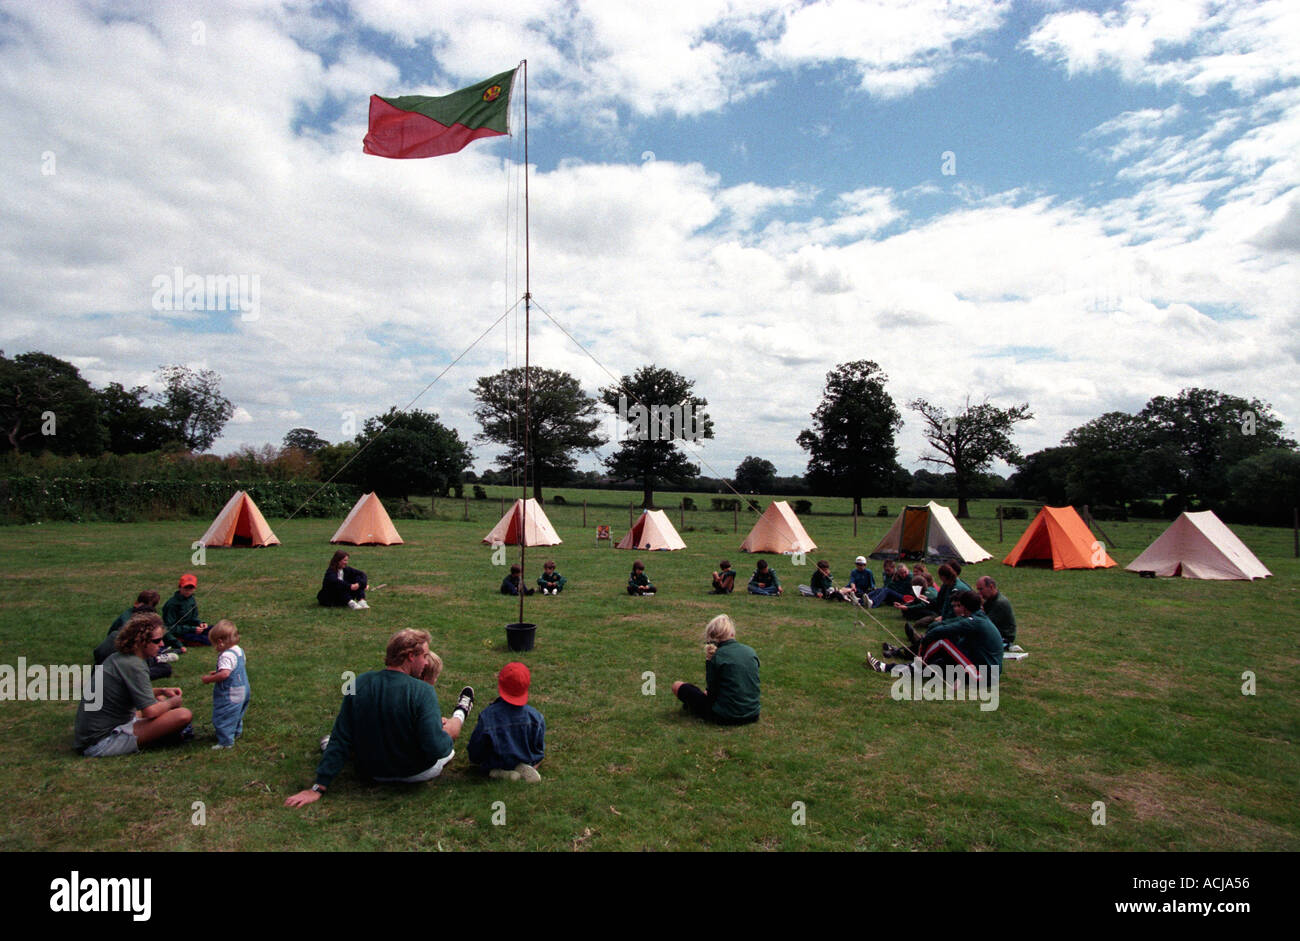 Woodcraft folk sitting around tents at camp site, Middlesex , UK. - Stock Image